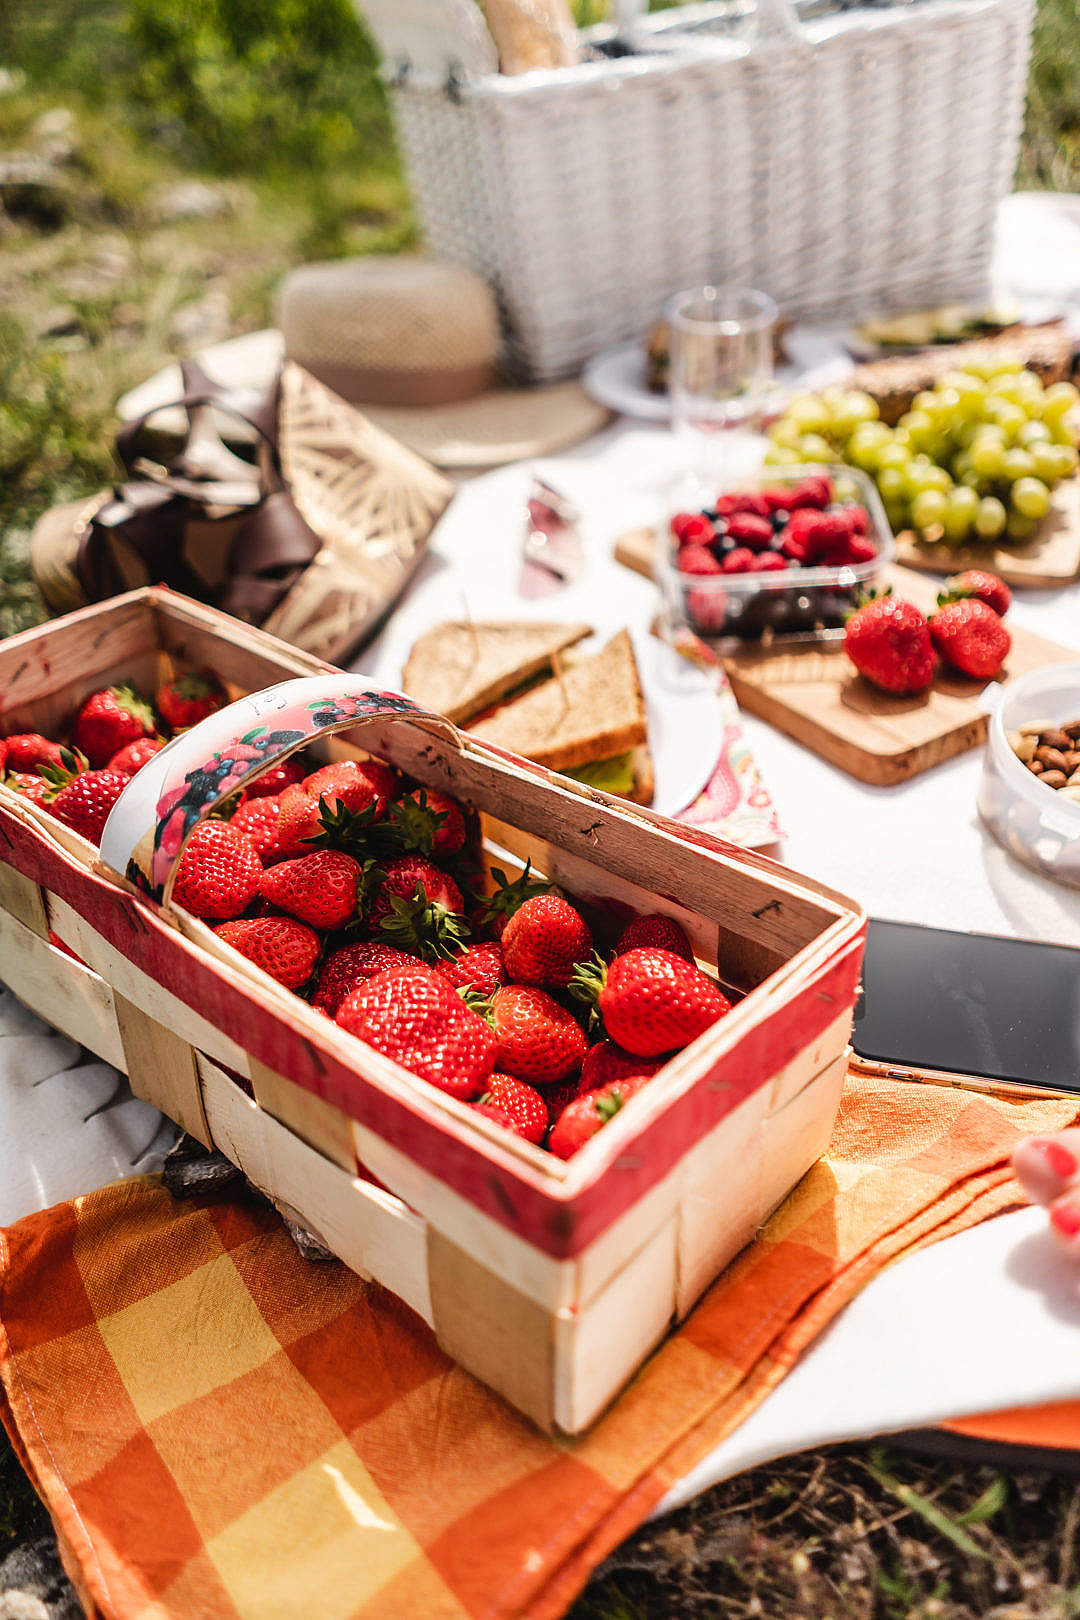 Download Picnic with Strawberries FREE Stock Photo